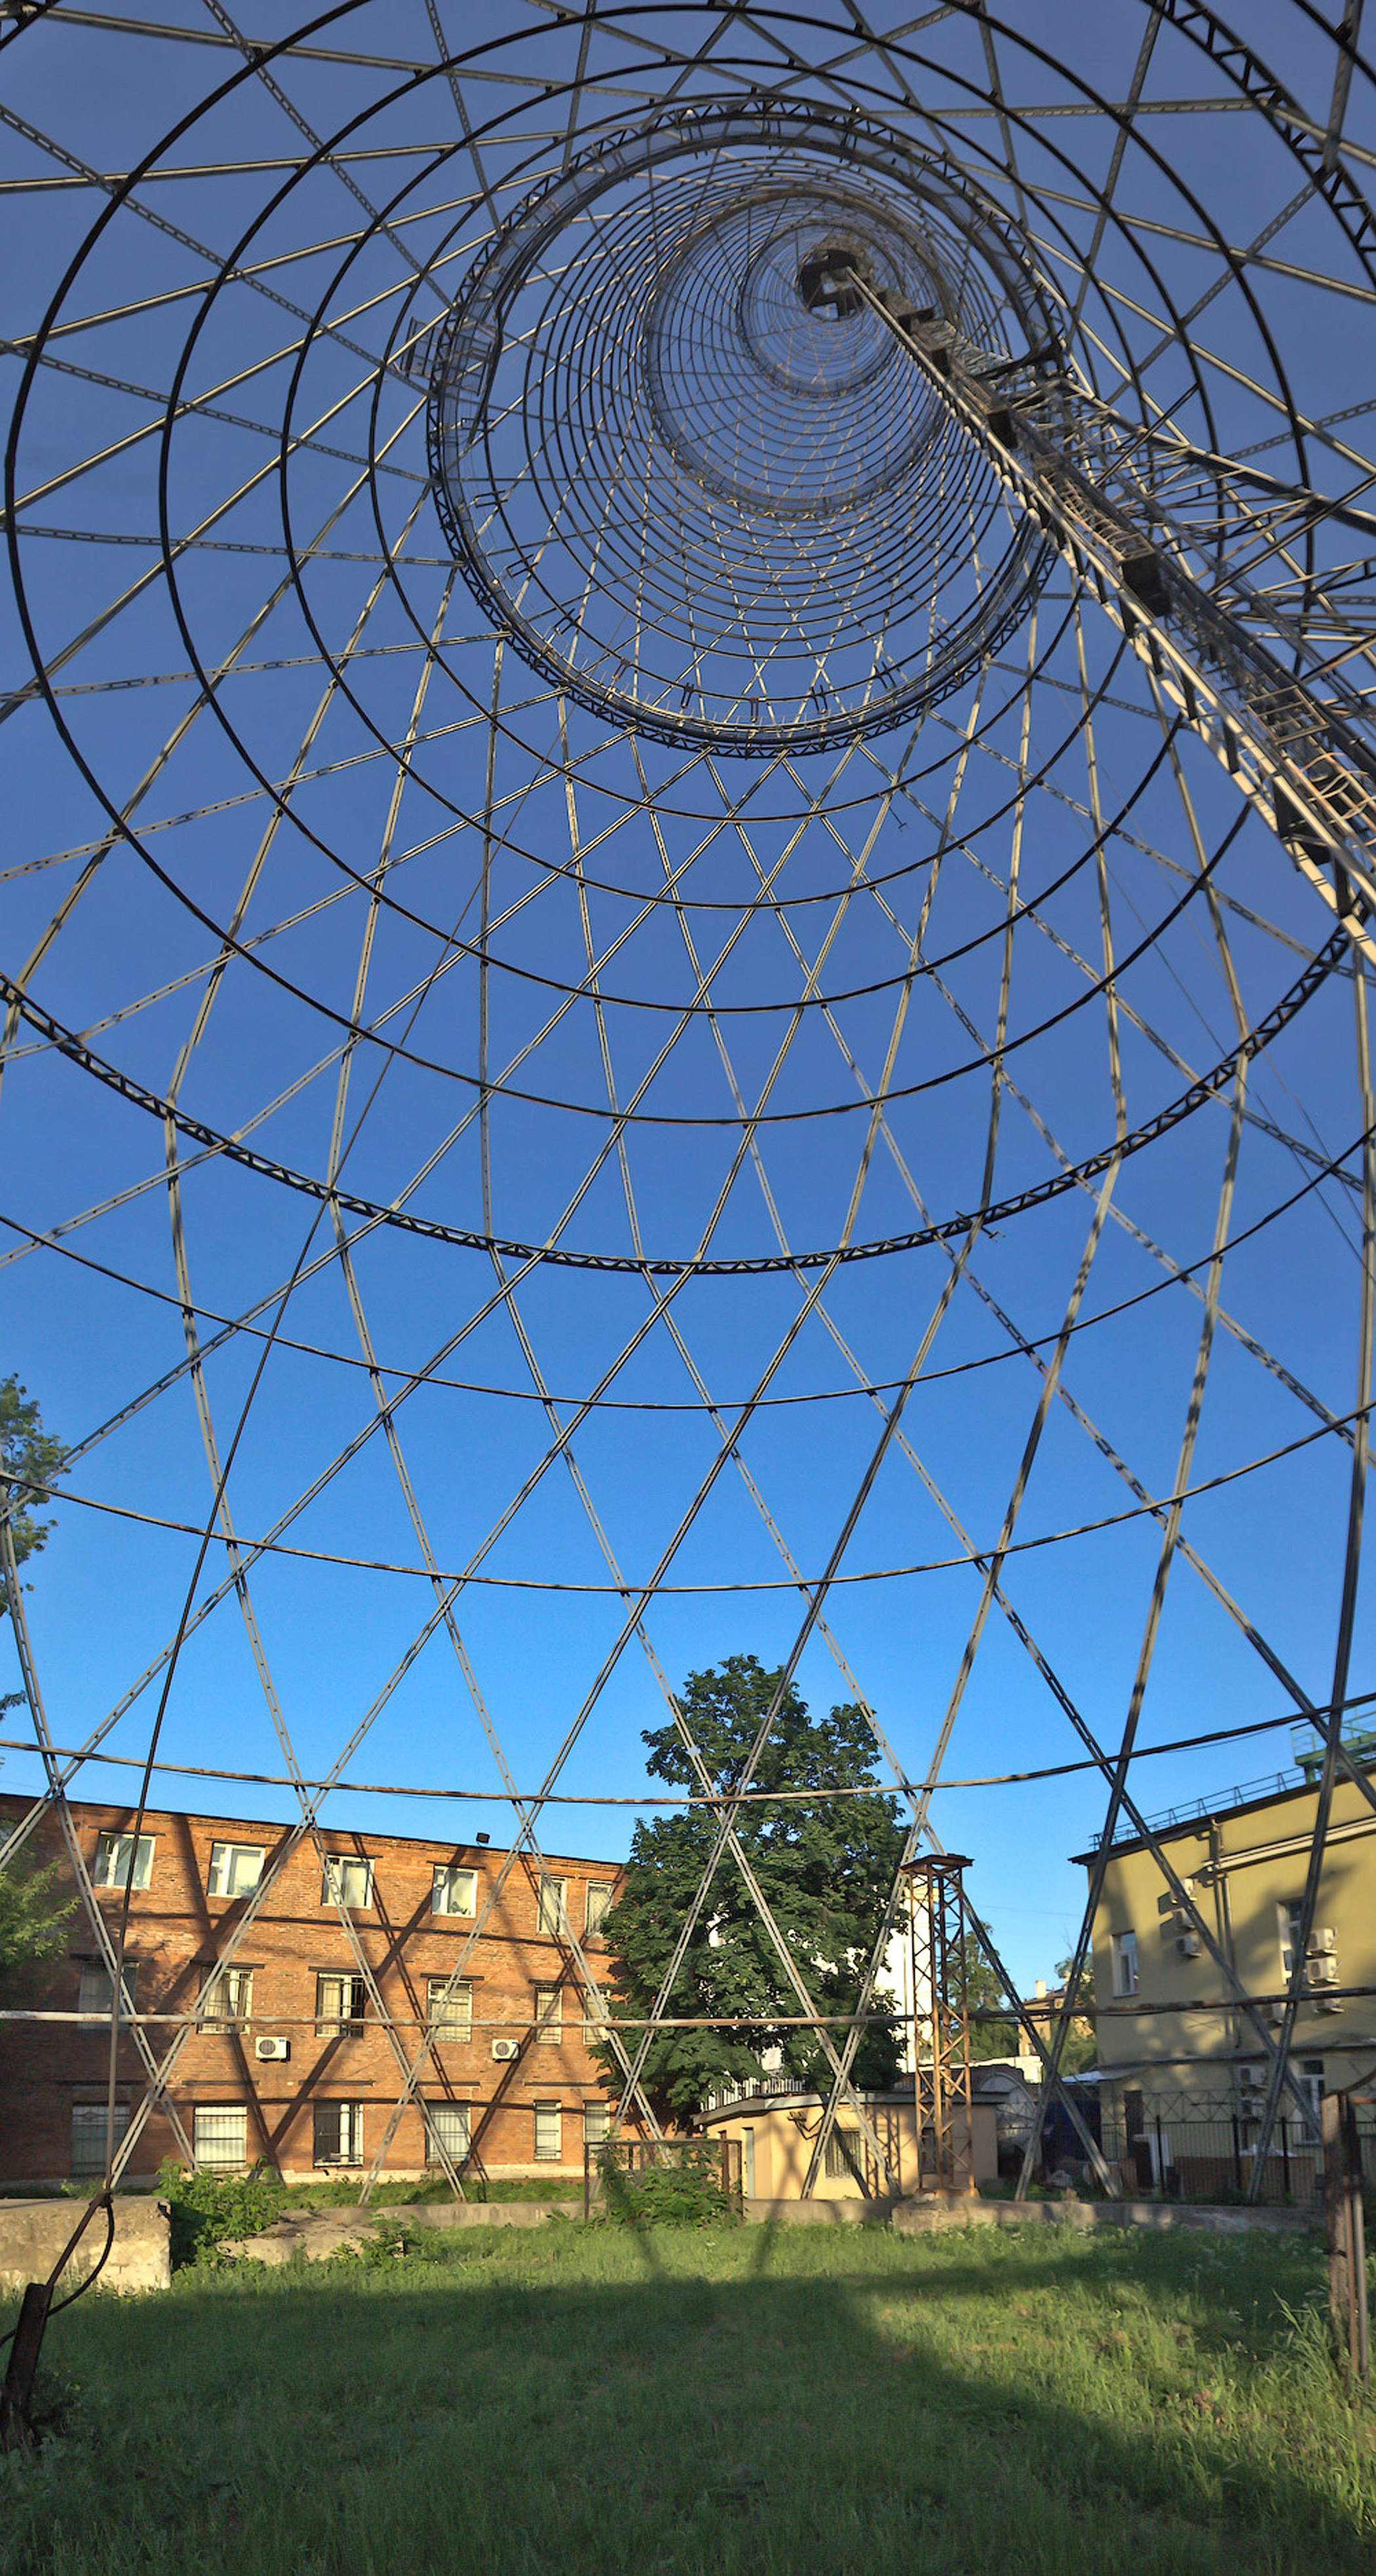 Russia, Shukhov Tower: Ongoing vigilance is necessary to secure the future of the Shukhov Tower, an icon of the advent of modern technology and an engineering masterpiece of the early twentieth century.